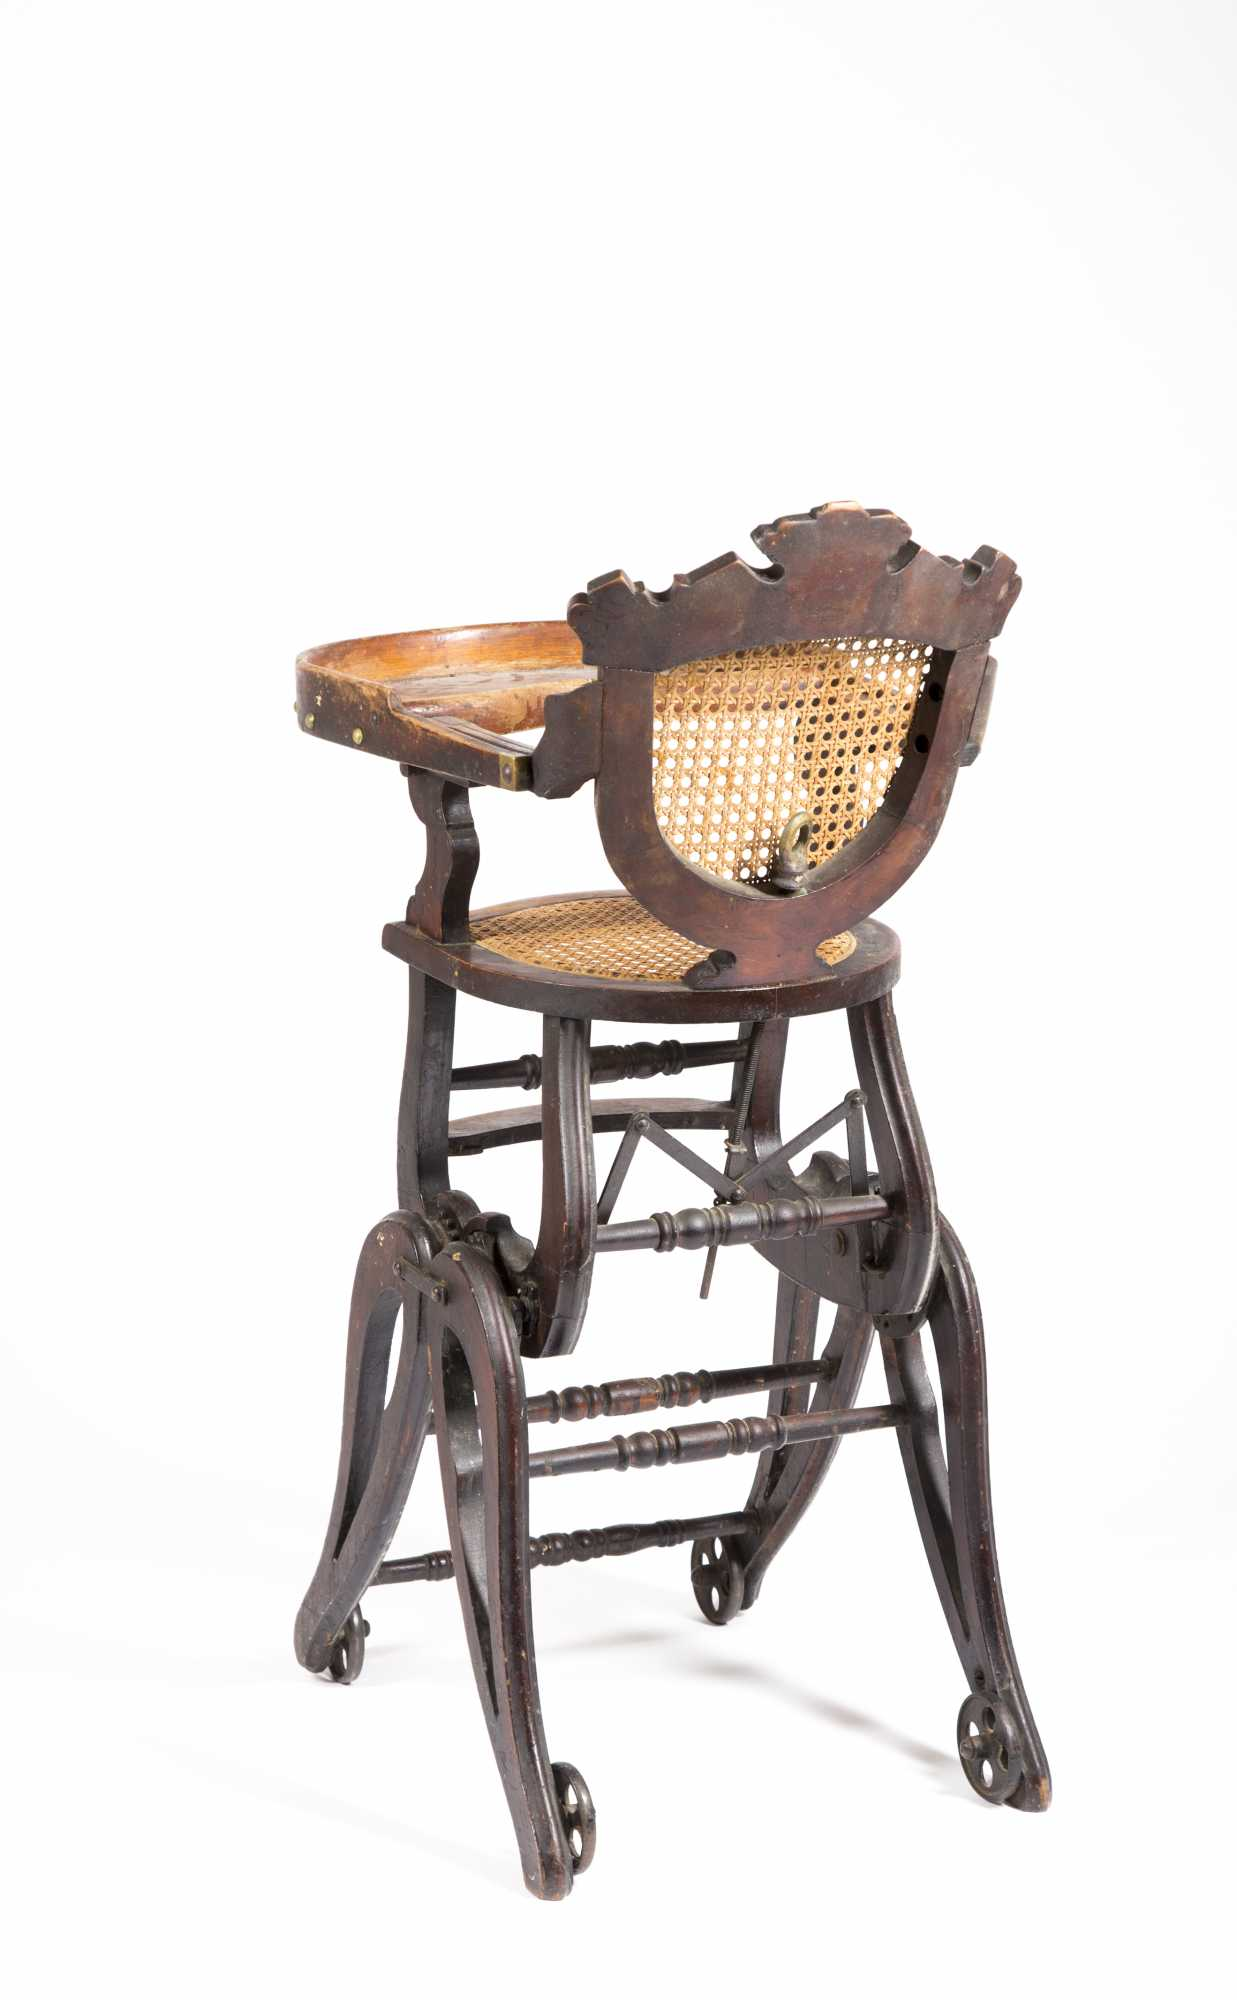 Adjustable High Chair Victorian Adjustable High Chair